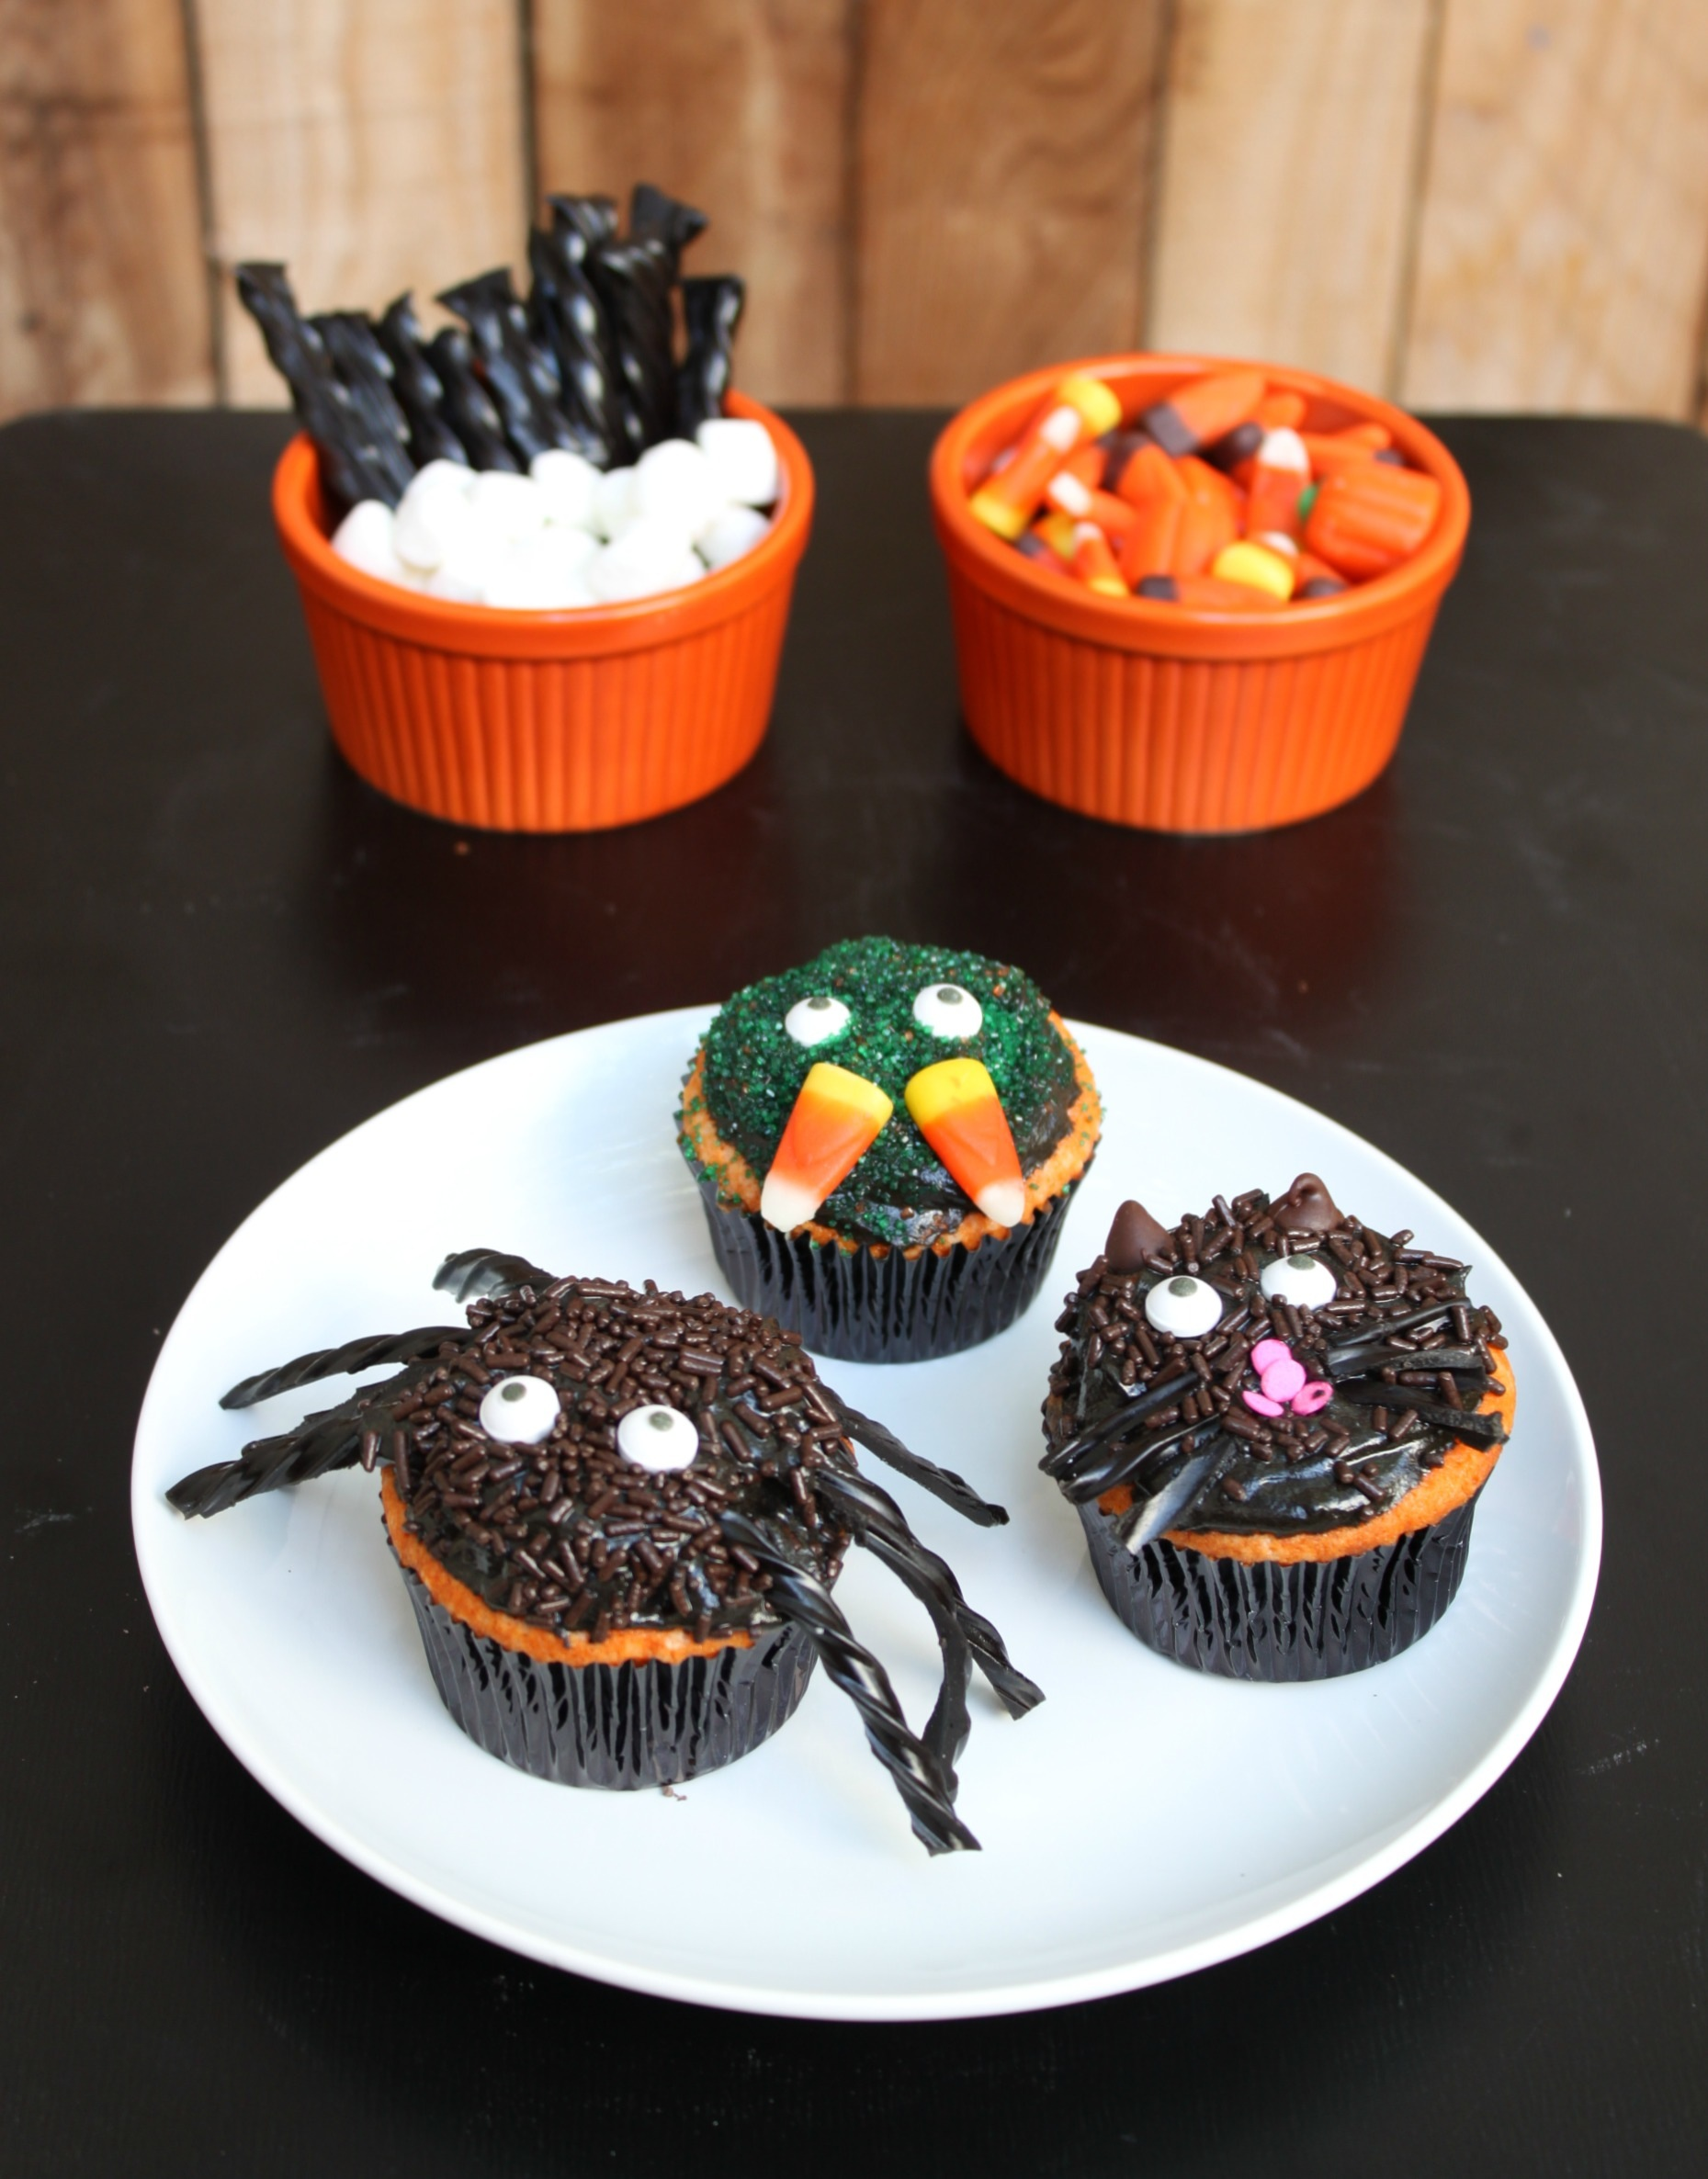 Creepy Halloween Cupcakes 52 Kitchen Adventures: halloween cupcakes